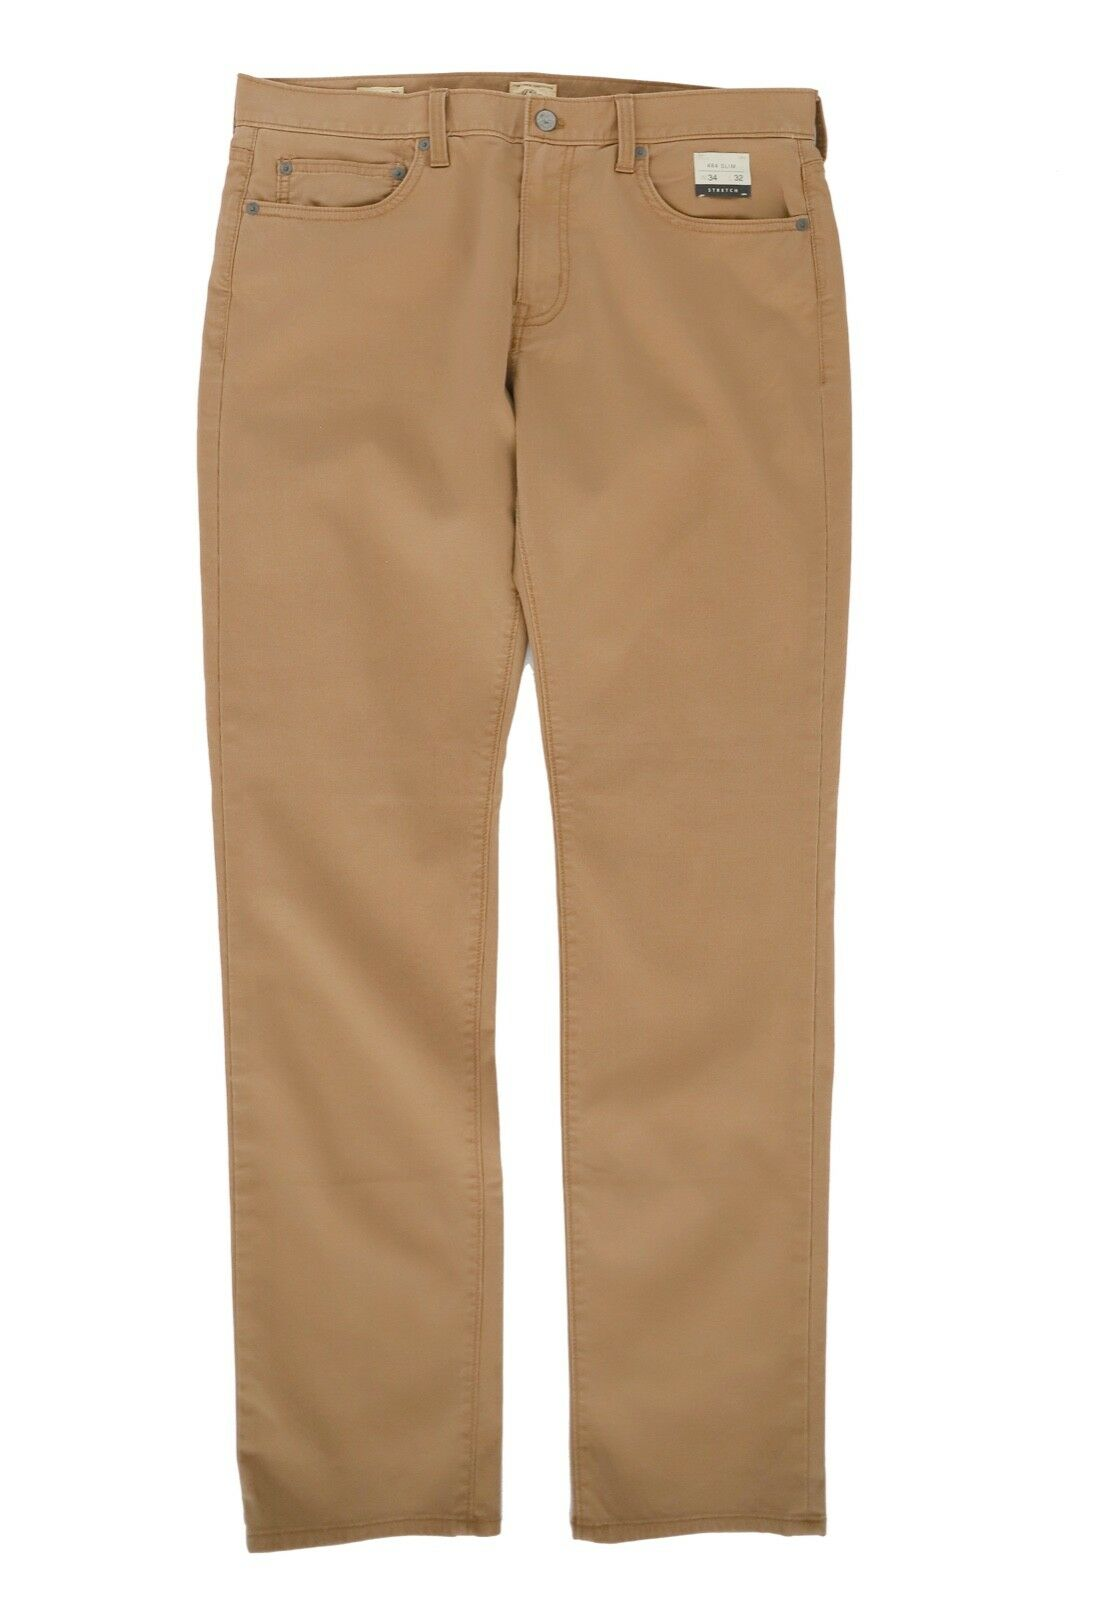 J.Crew Men's 34 32 - 484 Slim Fit Khaki Brown Light-Wt Bedford Corduroy Pants